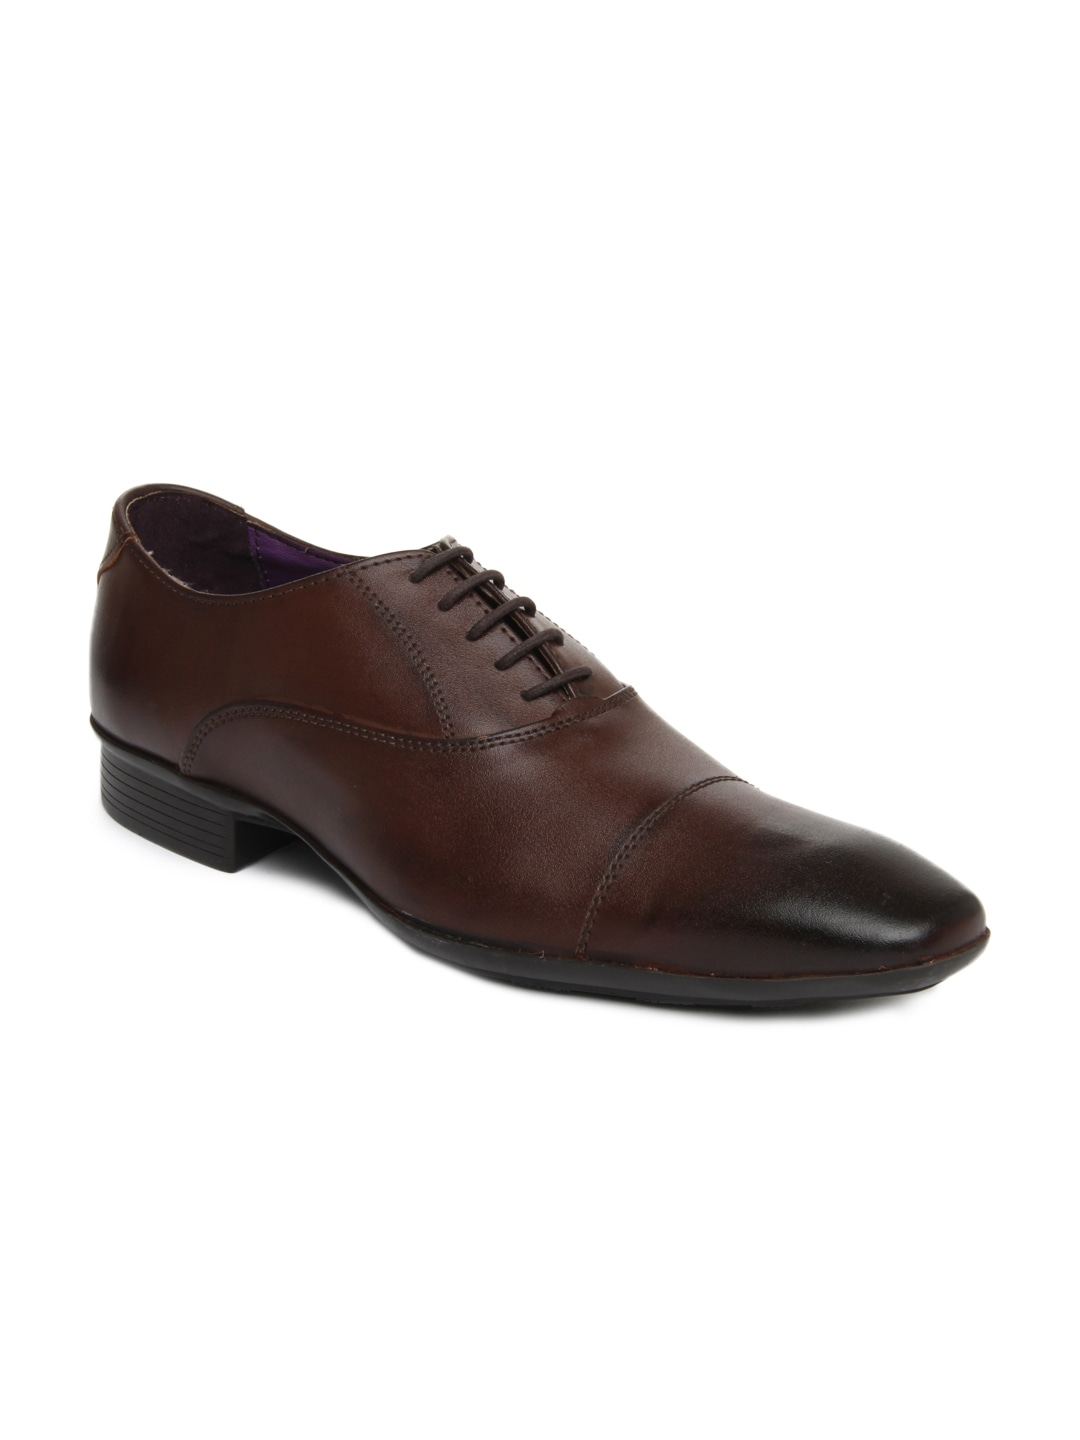 Knotty Derby Men Brown Arthur Toe Cap Oxford Leather Formal Shoes